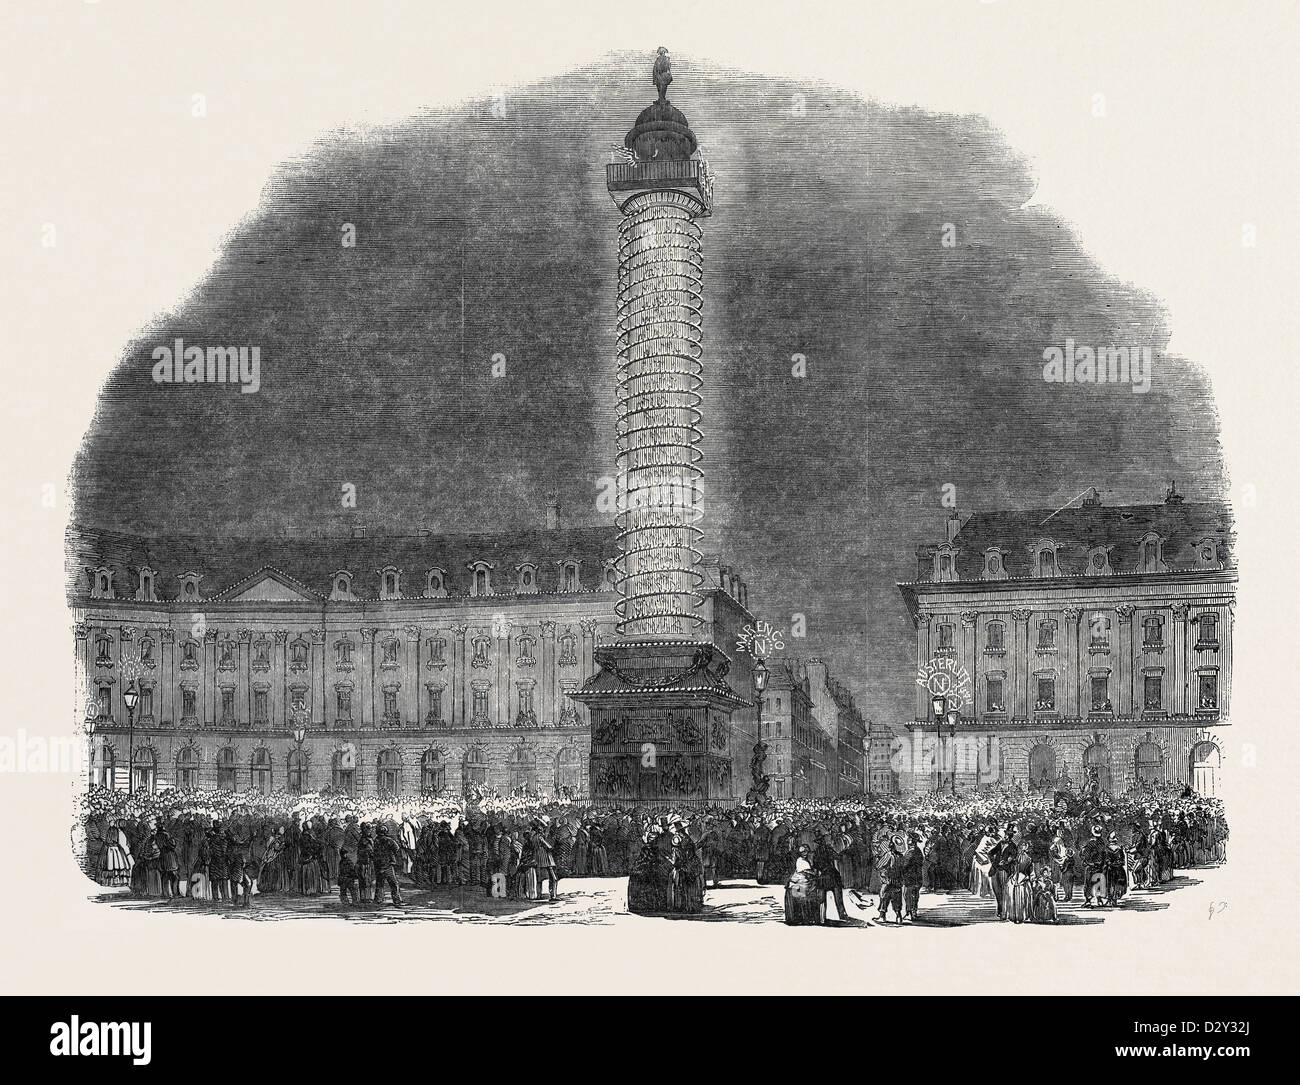 THE COLUMN IN THE PLACE VENDOME, ILLUMINATED, 1852 - Stock Image